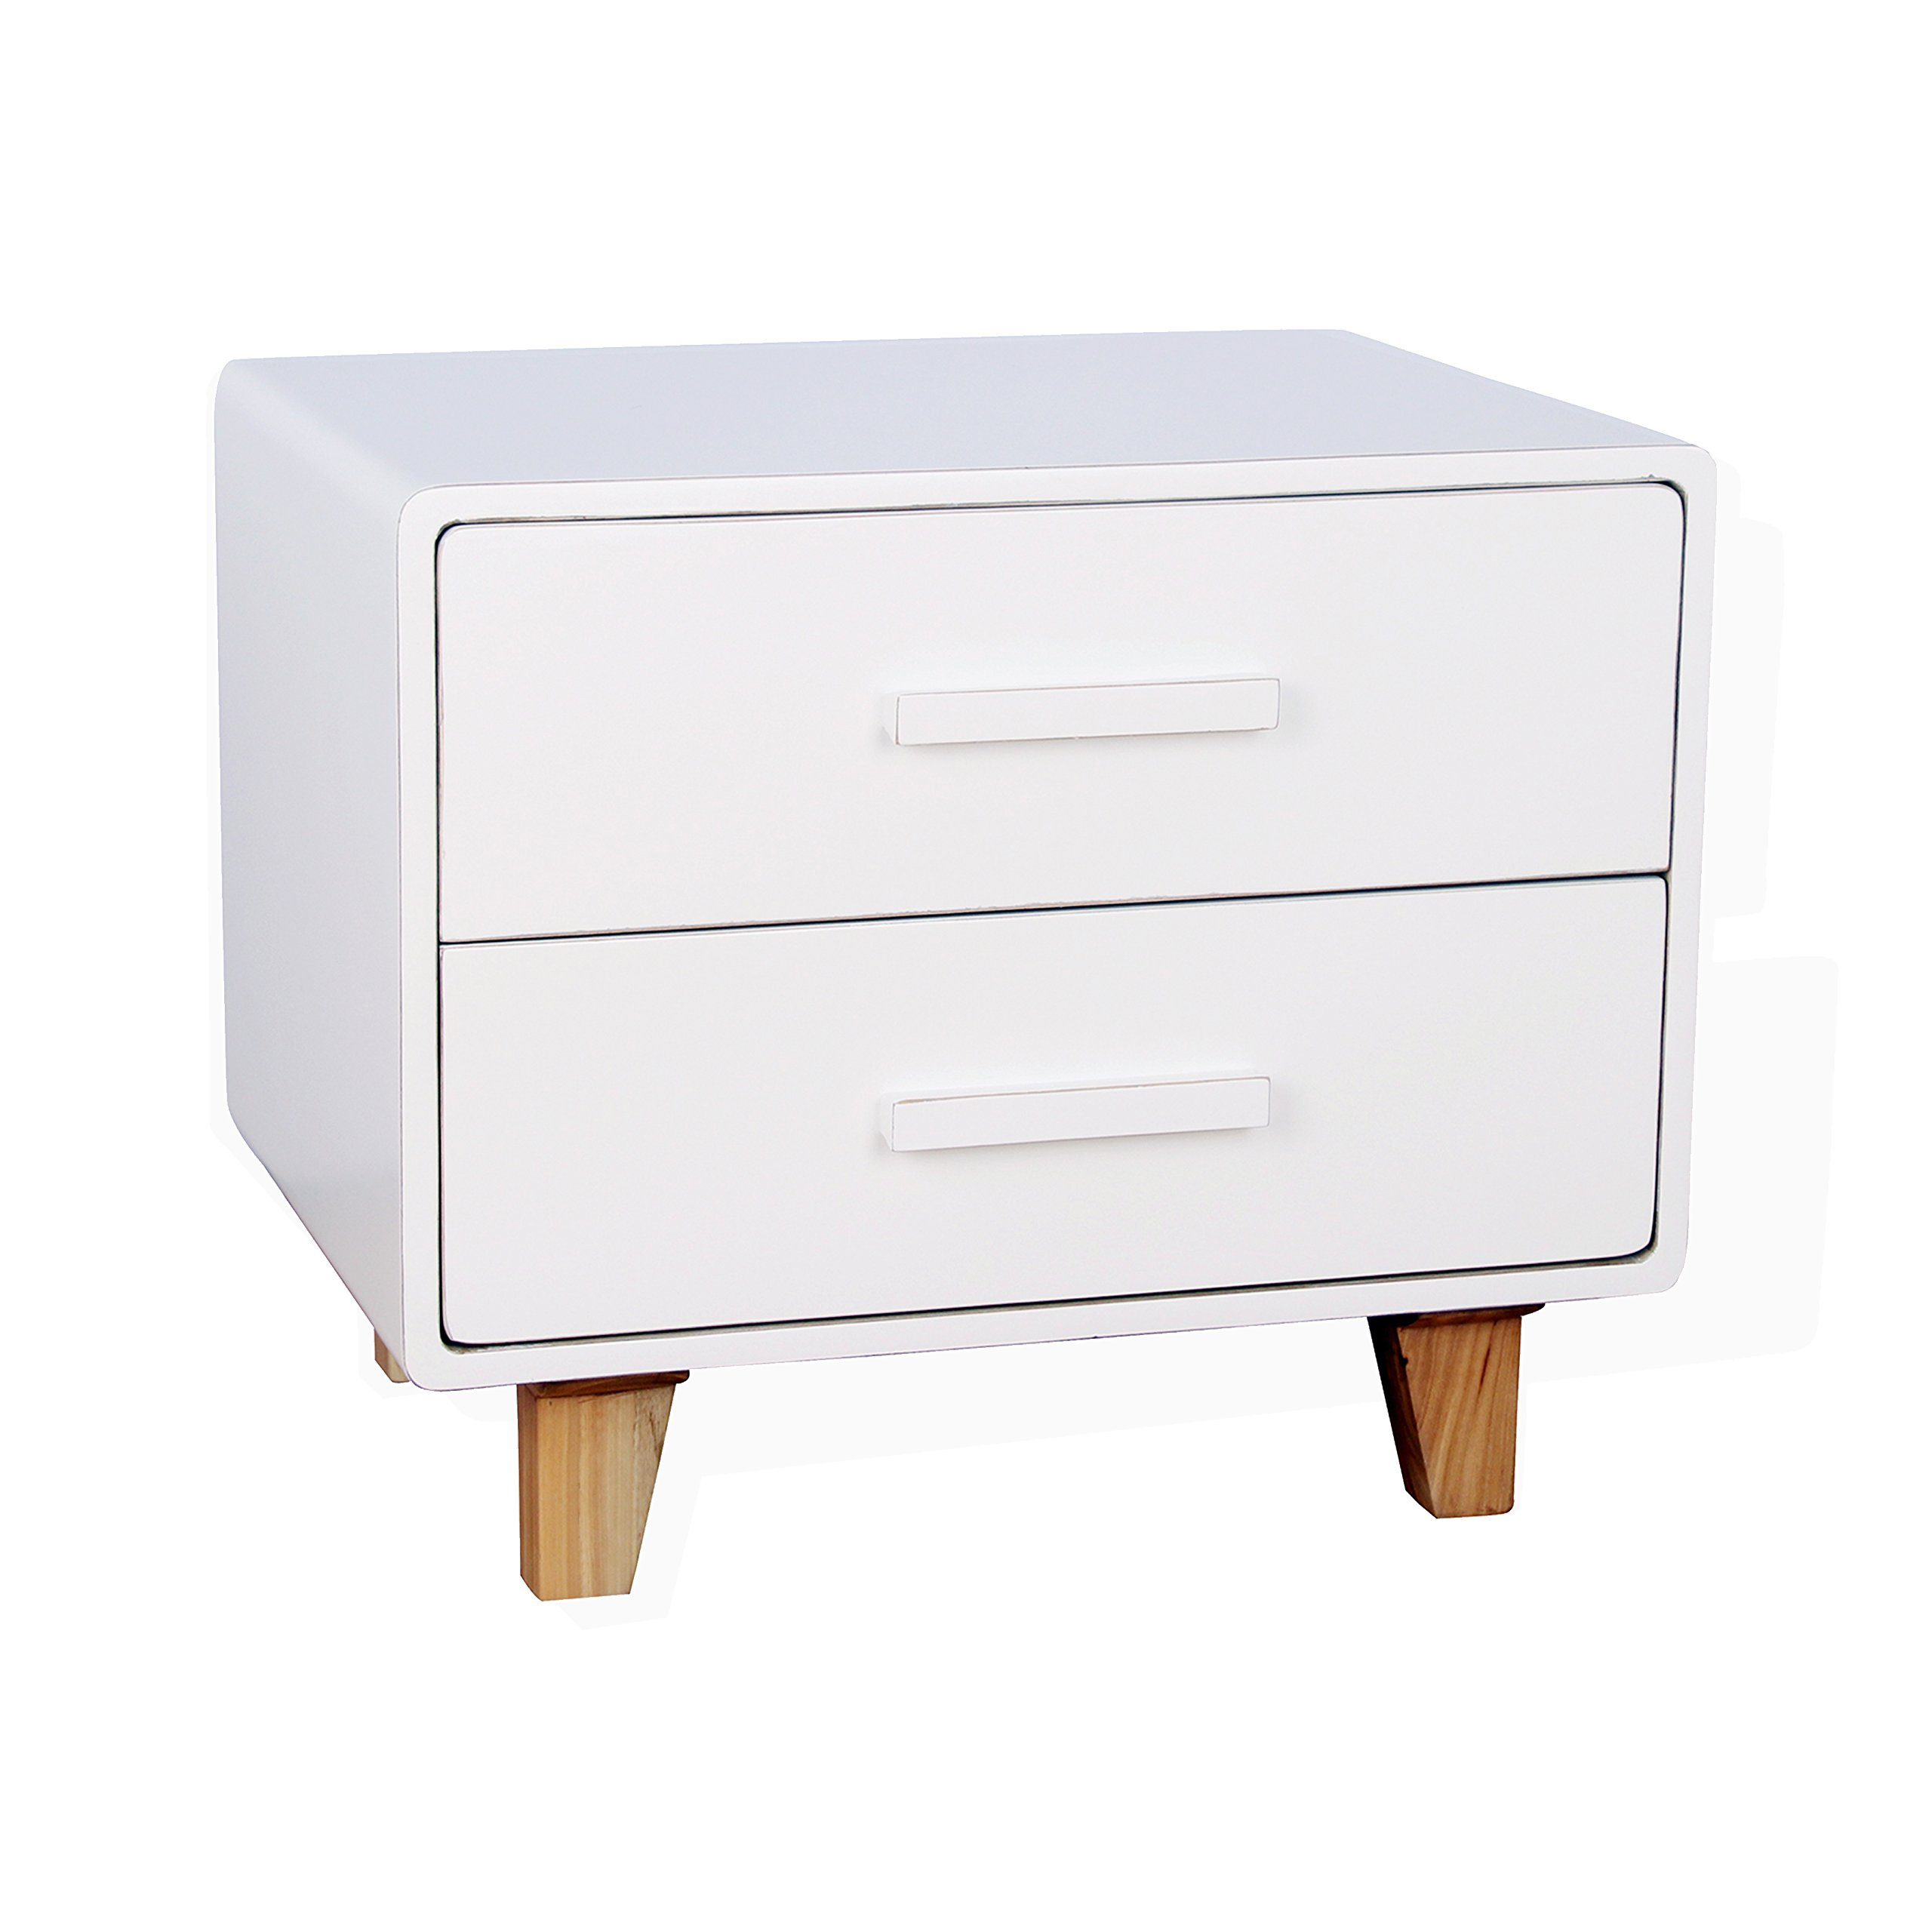 Porthos Home CB165B WHT Juniper Mid-Century Nightstand with Two Sliding Drawers, Made of Solid Wood, White